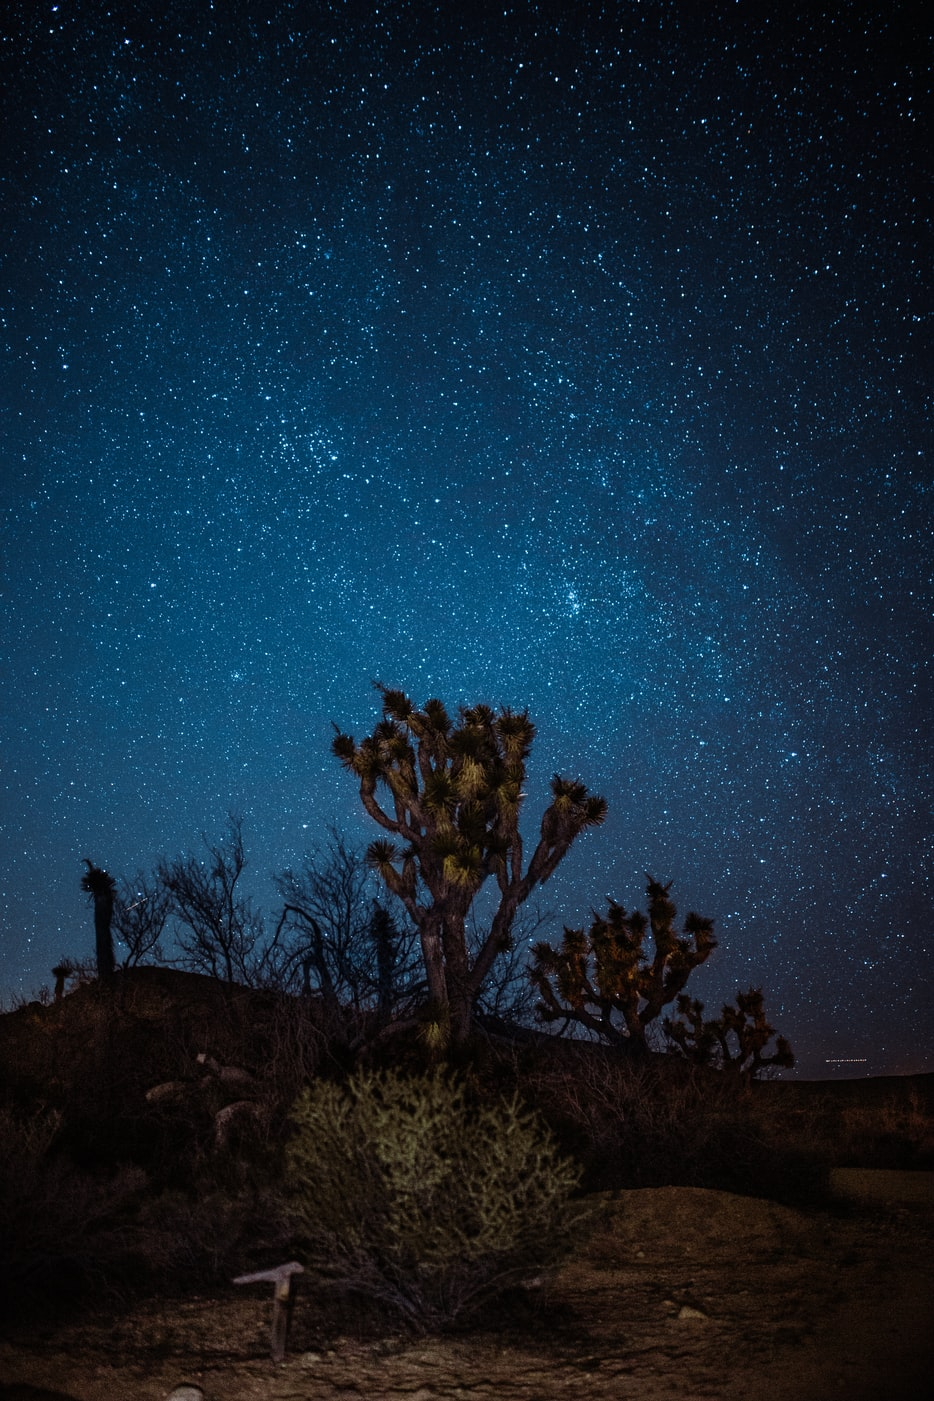 joshua tree under starry sky